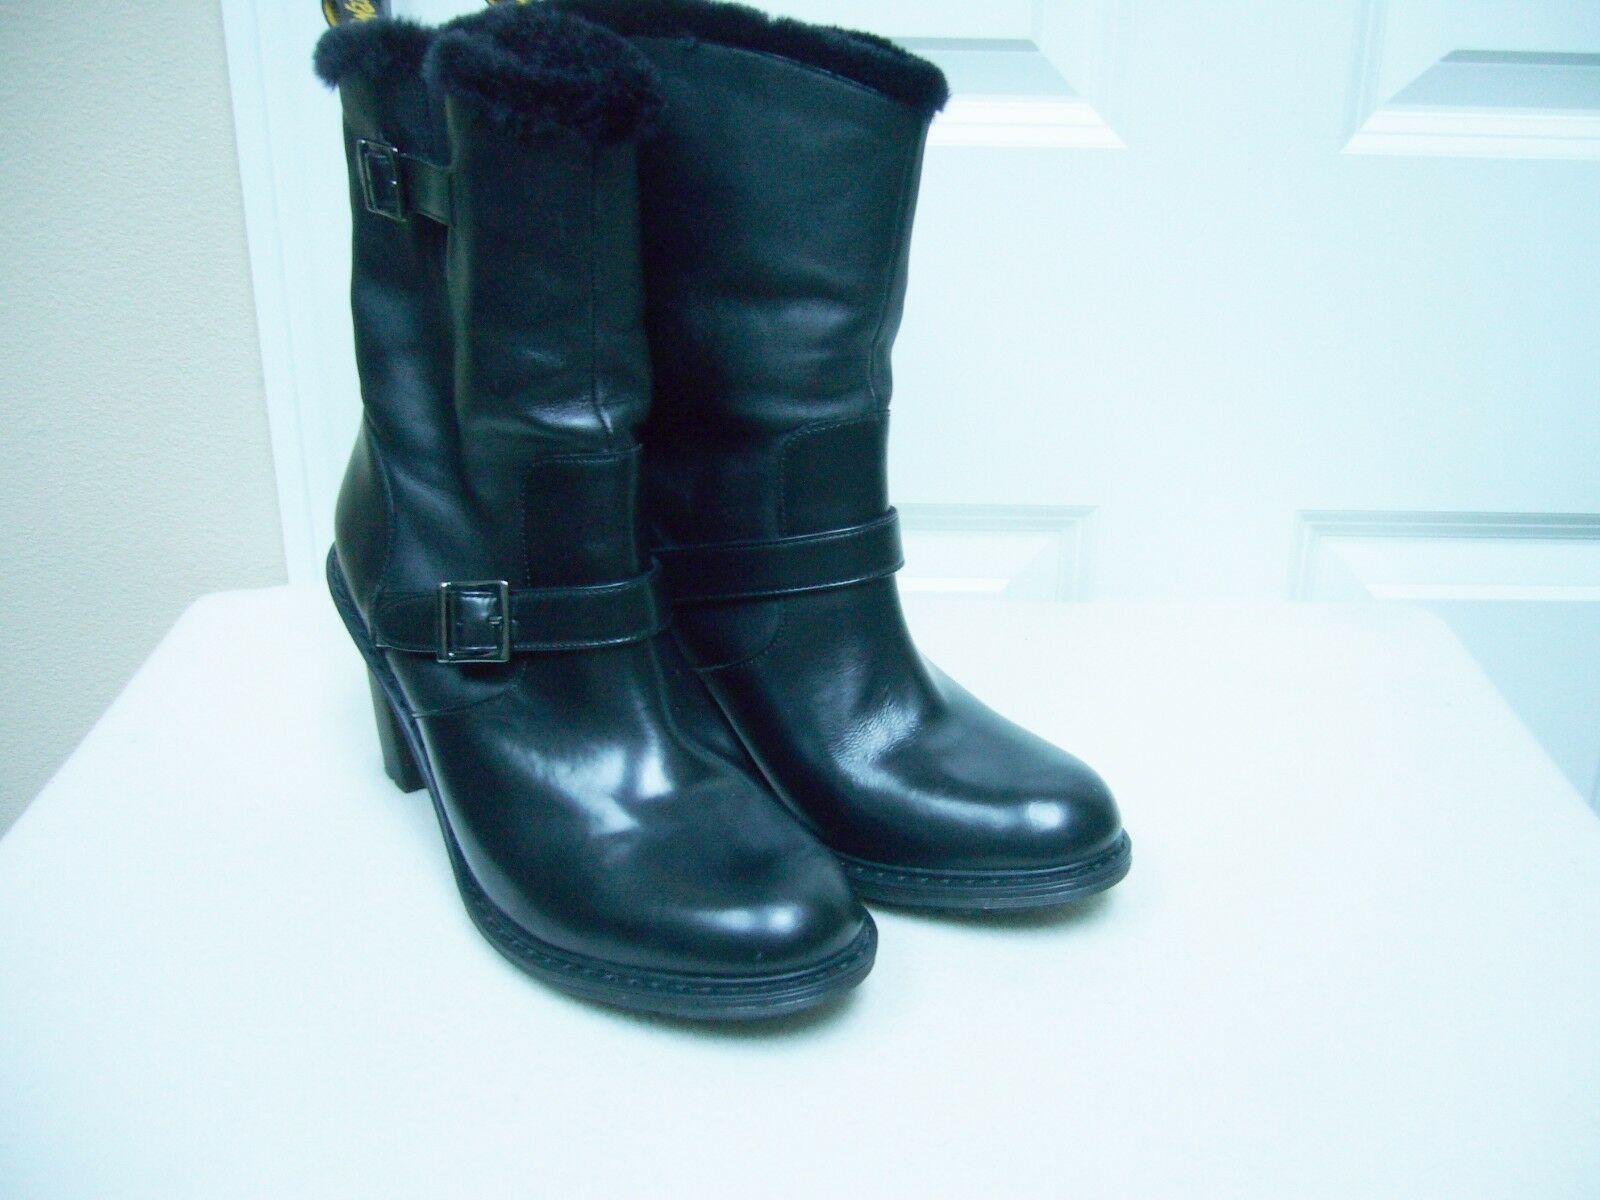 New New New Dr. Martens Womens Hanna Engineer Boots Black Leather Faux Fur Size 11 faf25f